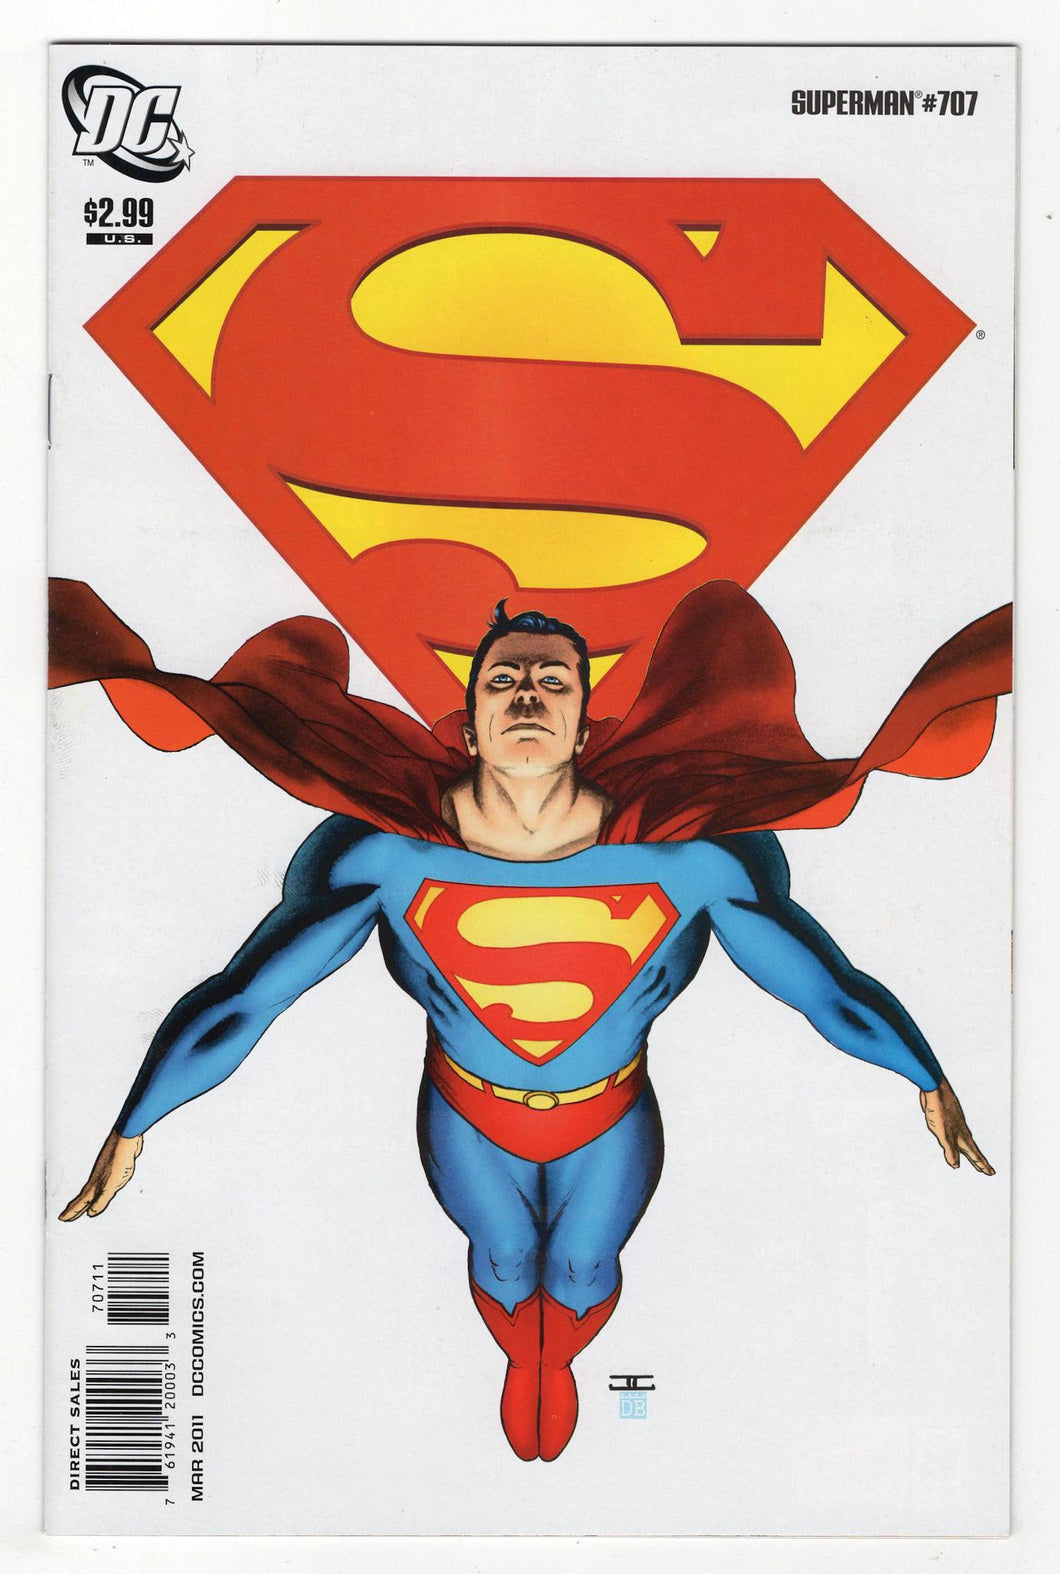 Superman #707 Cover Front